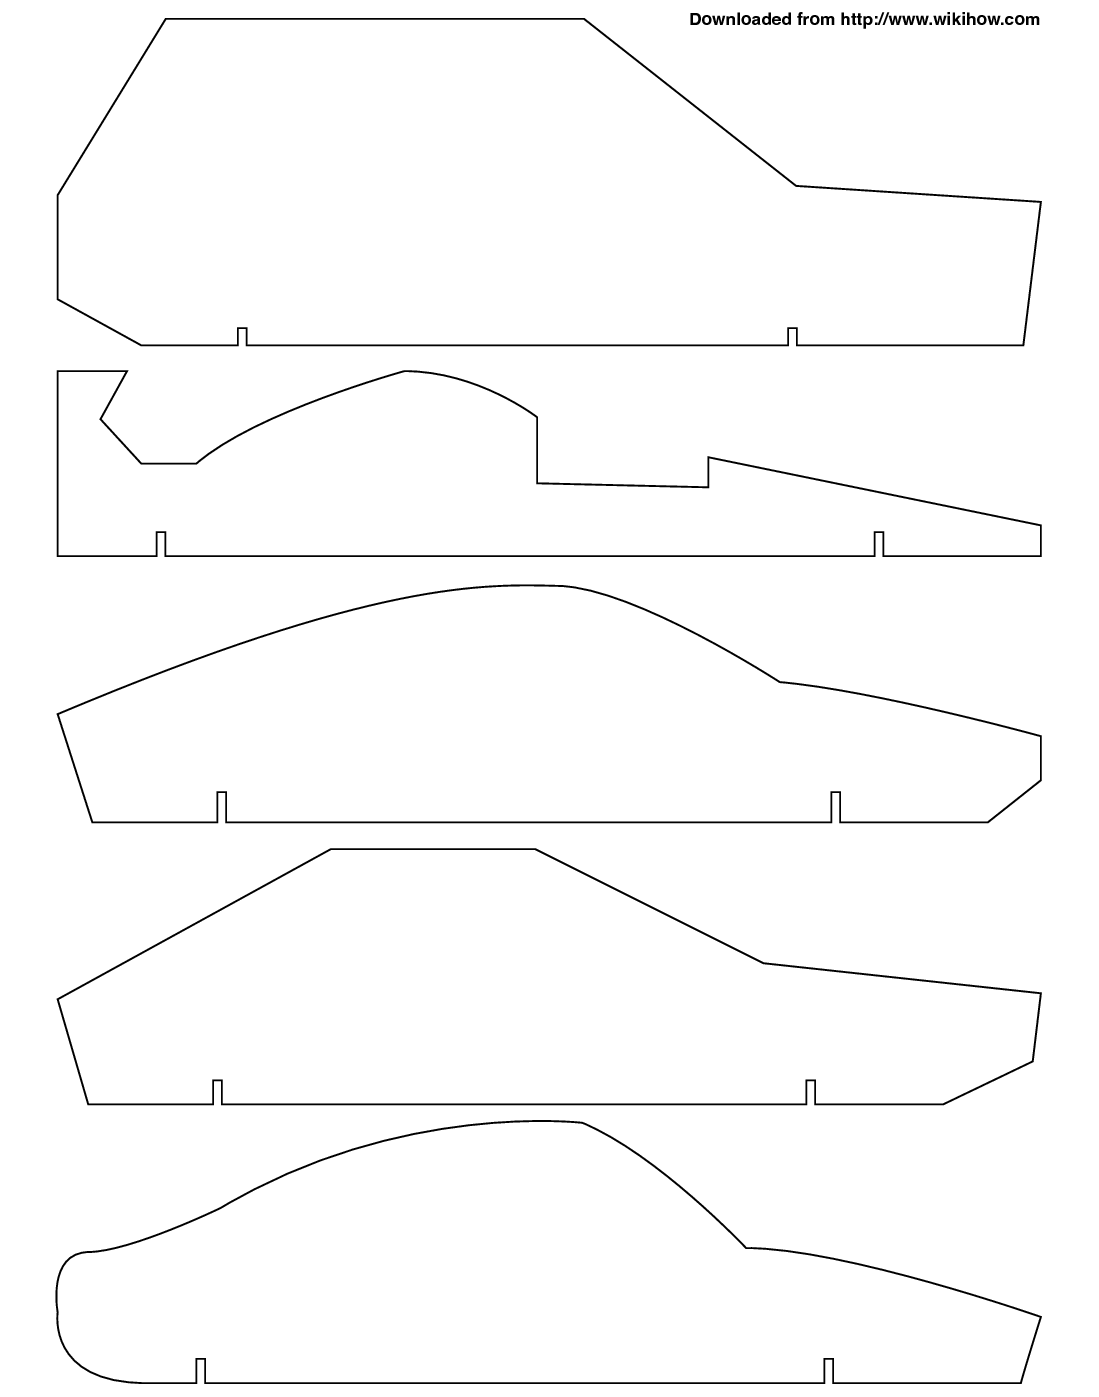 http://pad3.whstatic.com/images/c/c8/Pinewood-Derby-Car.png ...